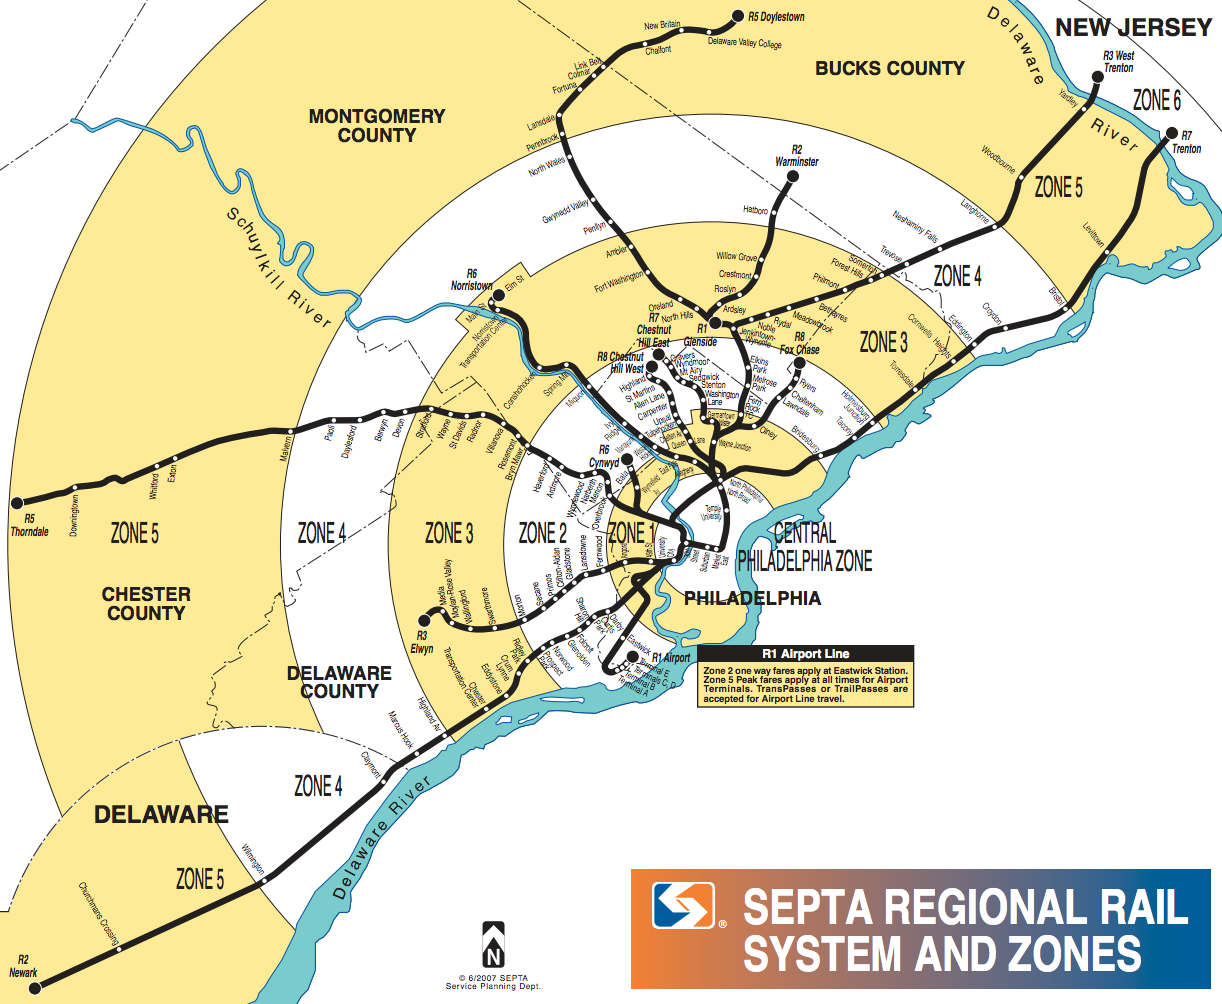 Current SEPTA regional rail system and zones